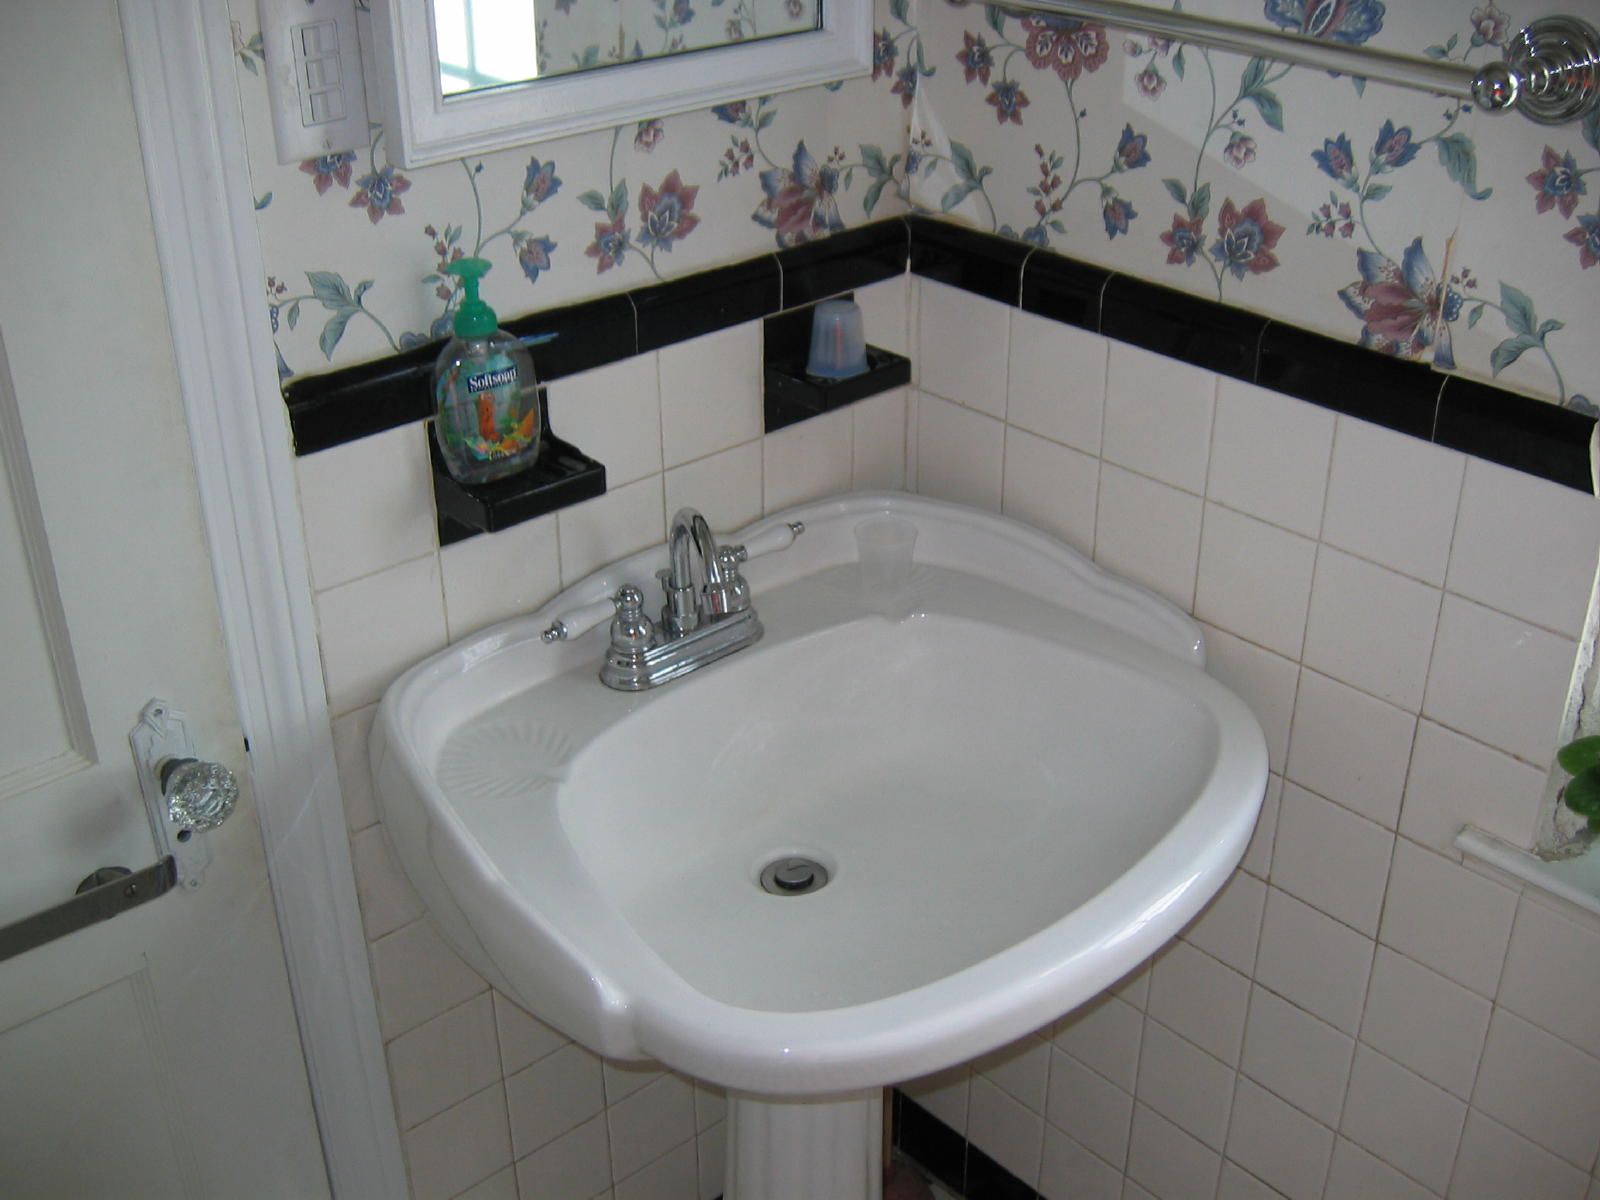 cast iron tub removal page 4 remodeling contractor talk. Black Bedroom Furniture Sets. Home Design Ideas